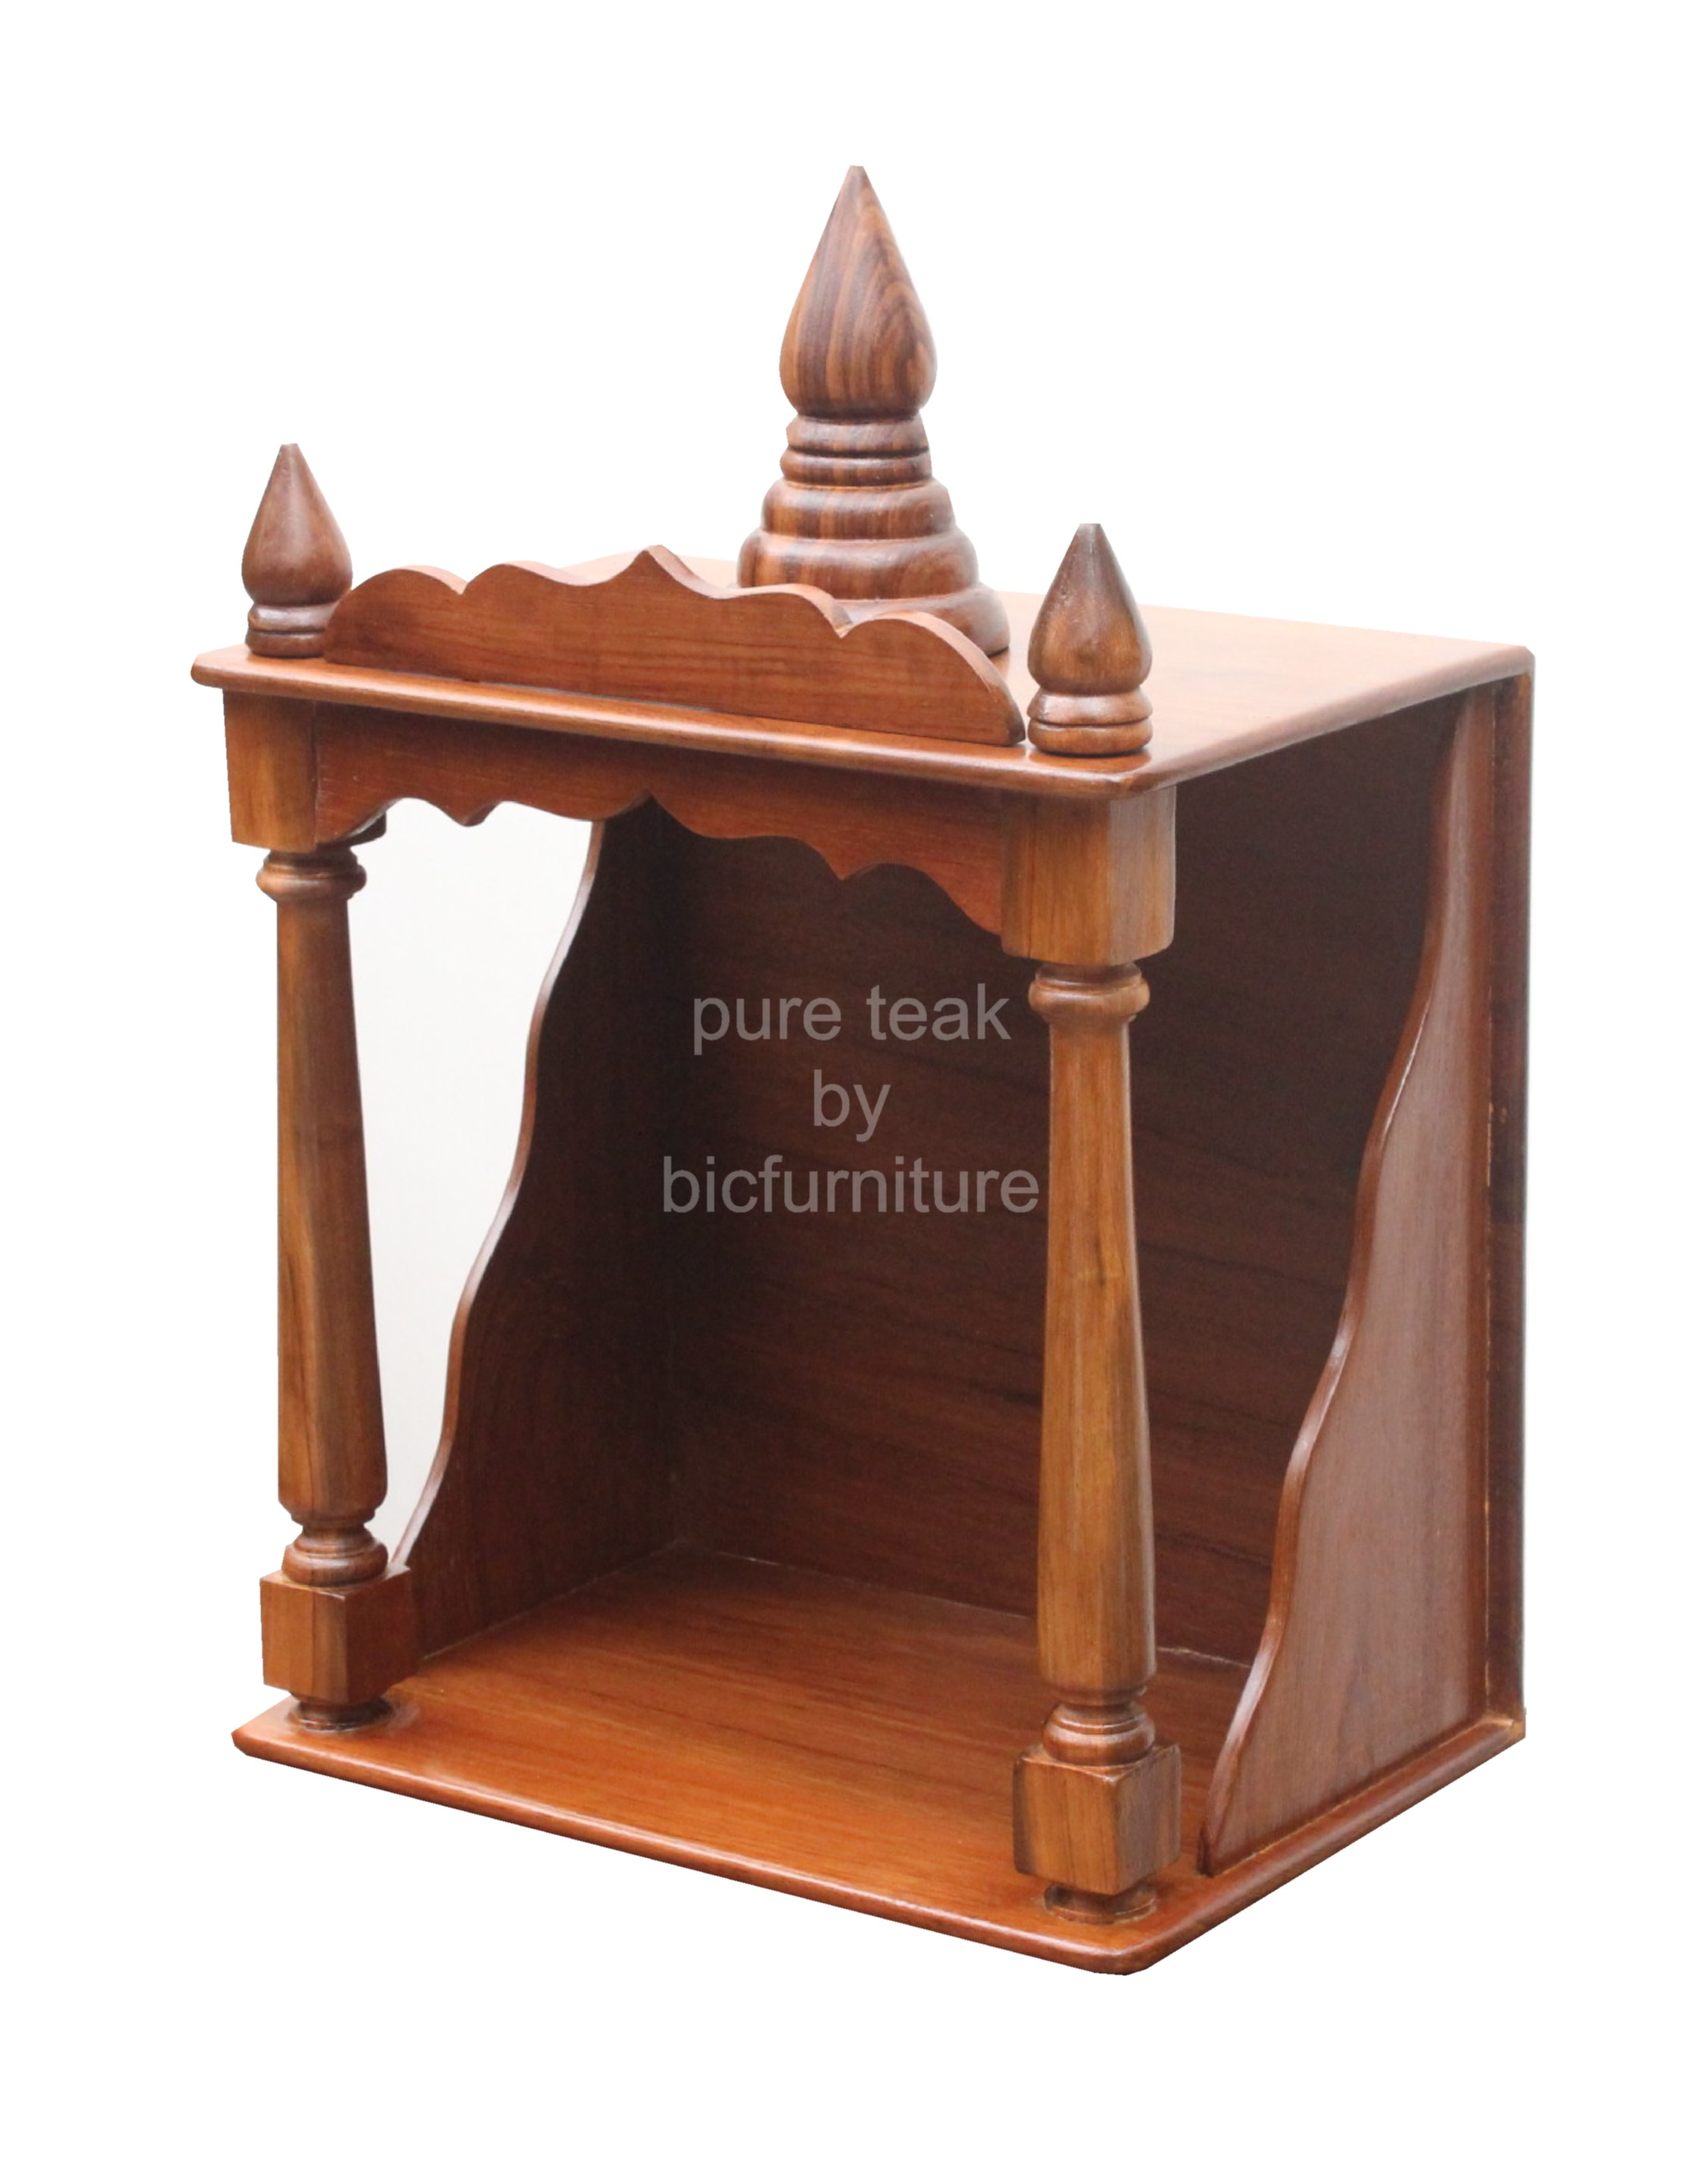 Wt 1 Wooden Home Temple Details Bic Furniture India